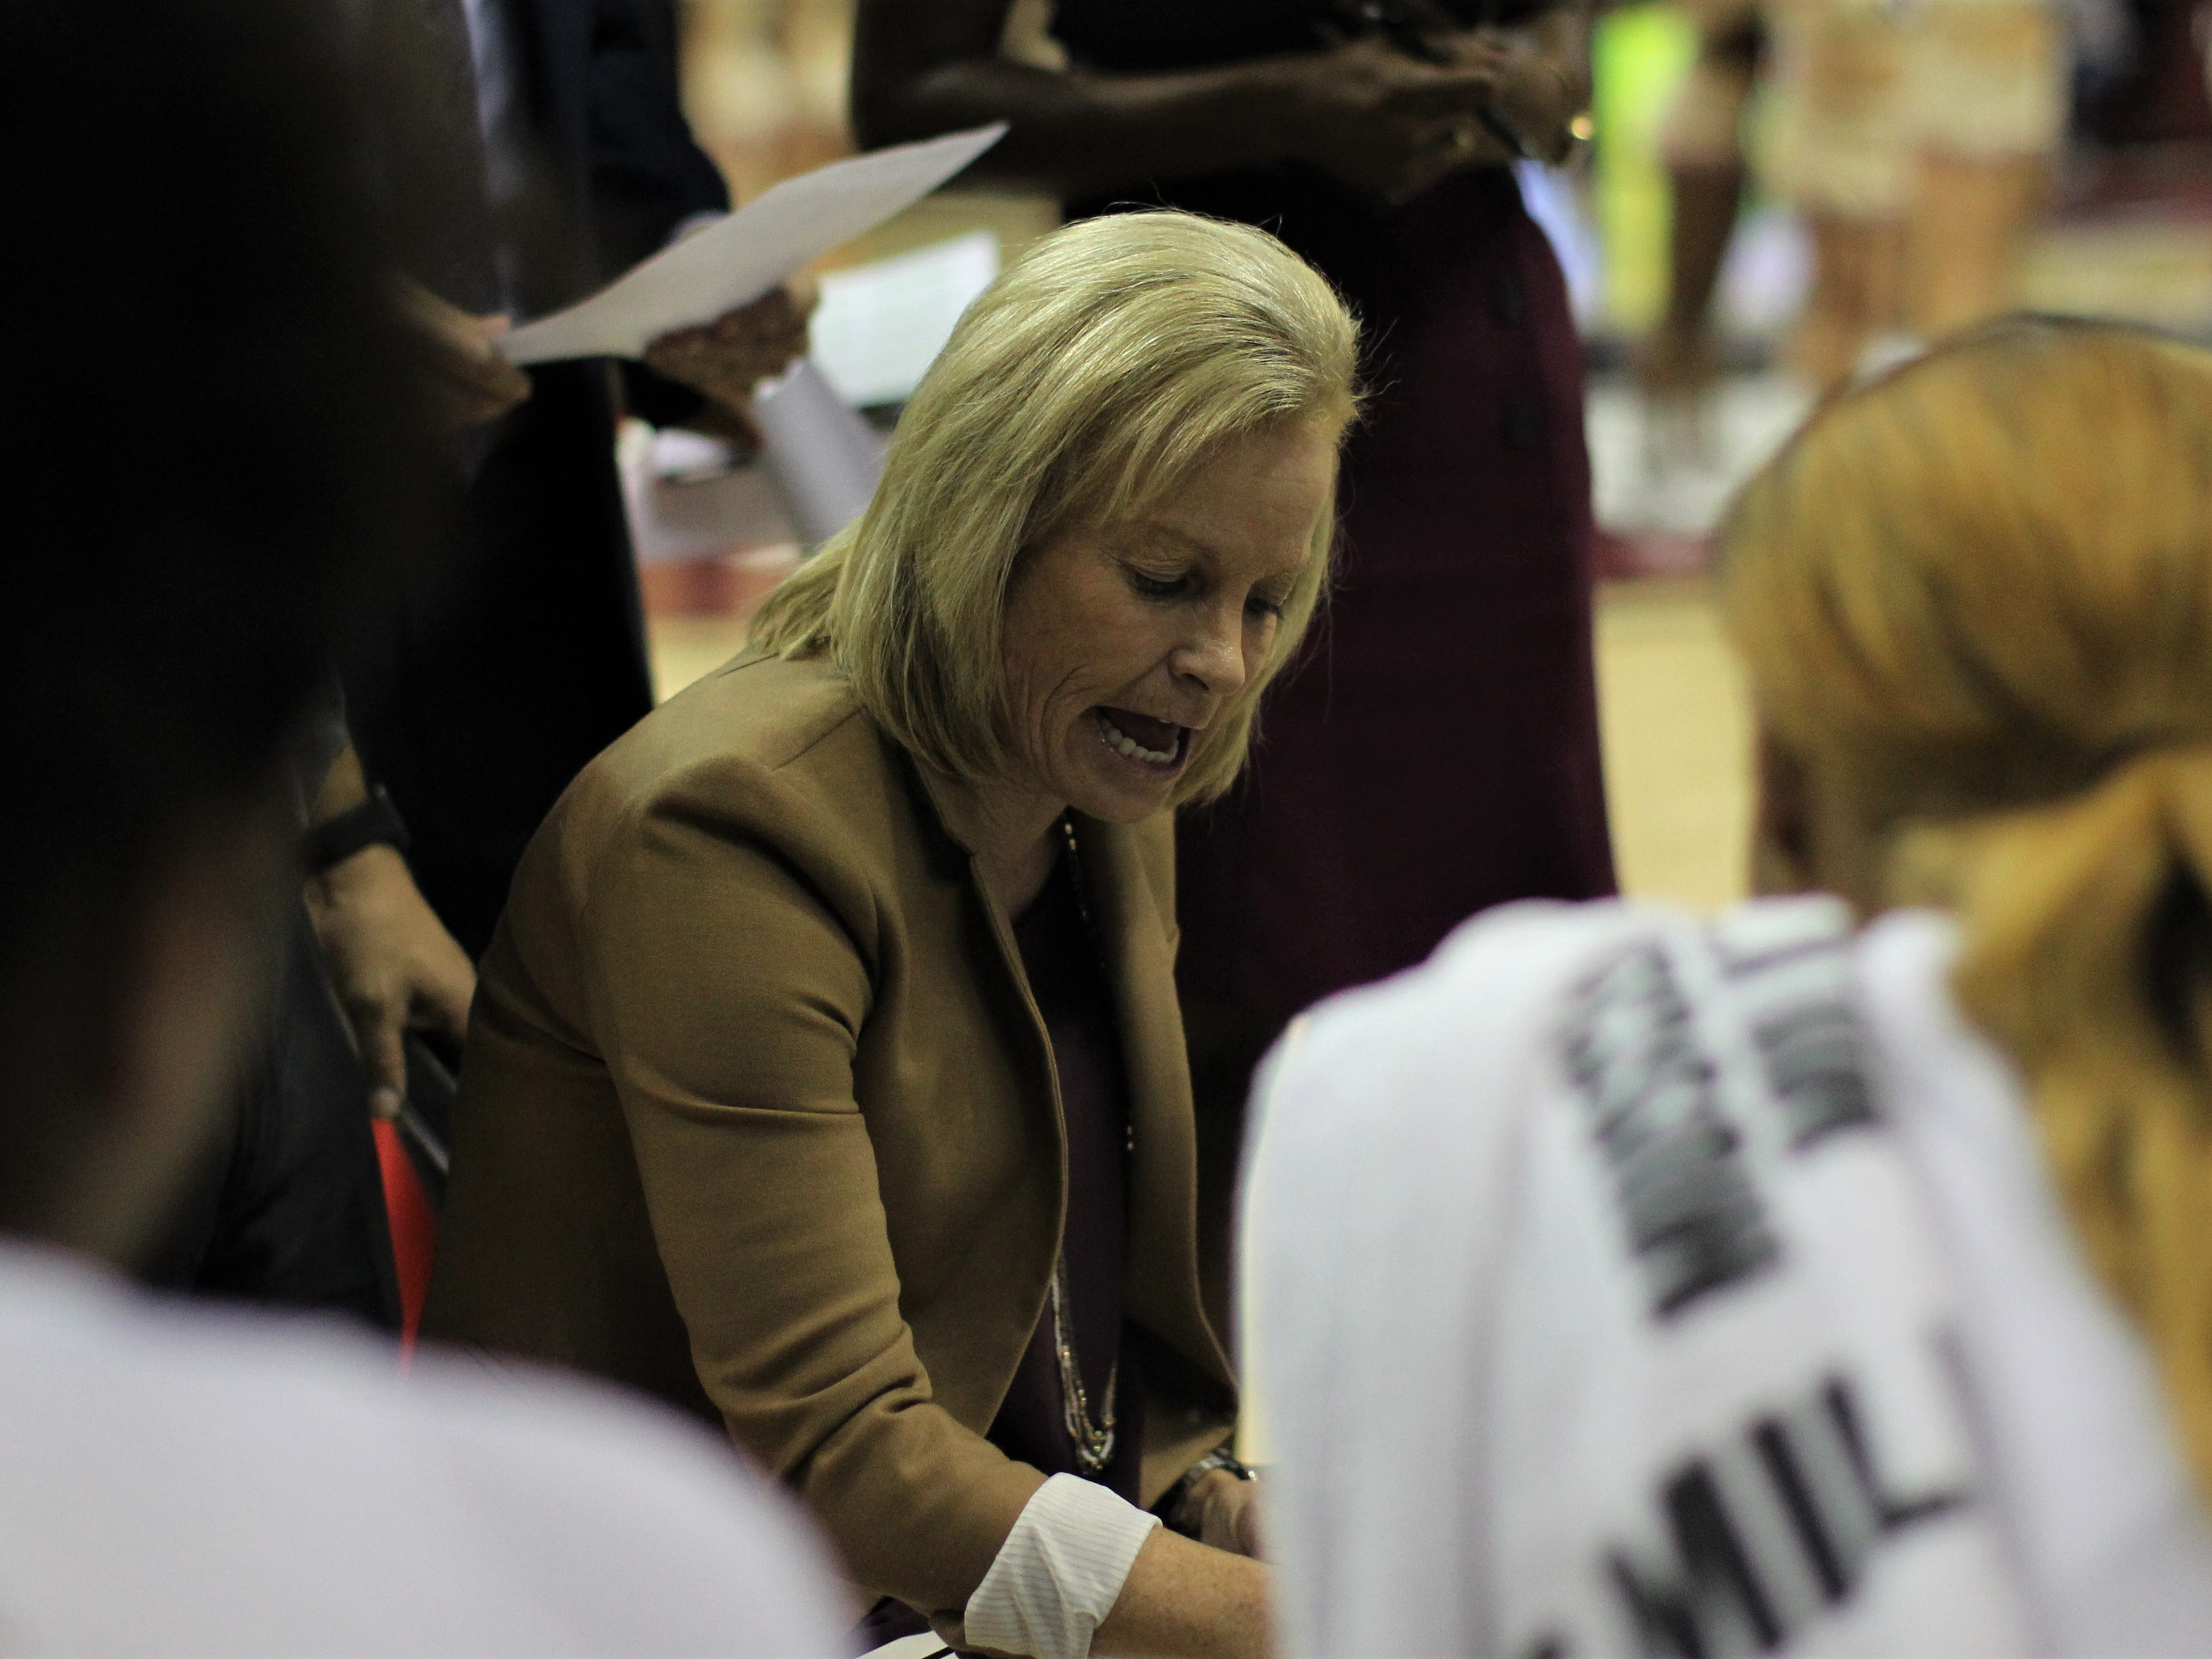 Florida State women's basketball head coach Sue Semrau draws up a play during the second half of the Seminoles' game against Florida at the Tucker Civic Center on Nov. 11, 2018.